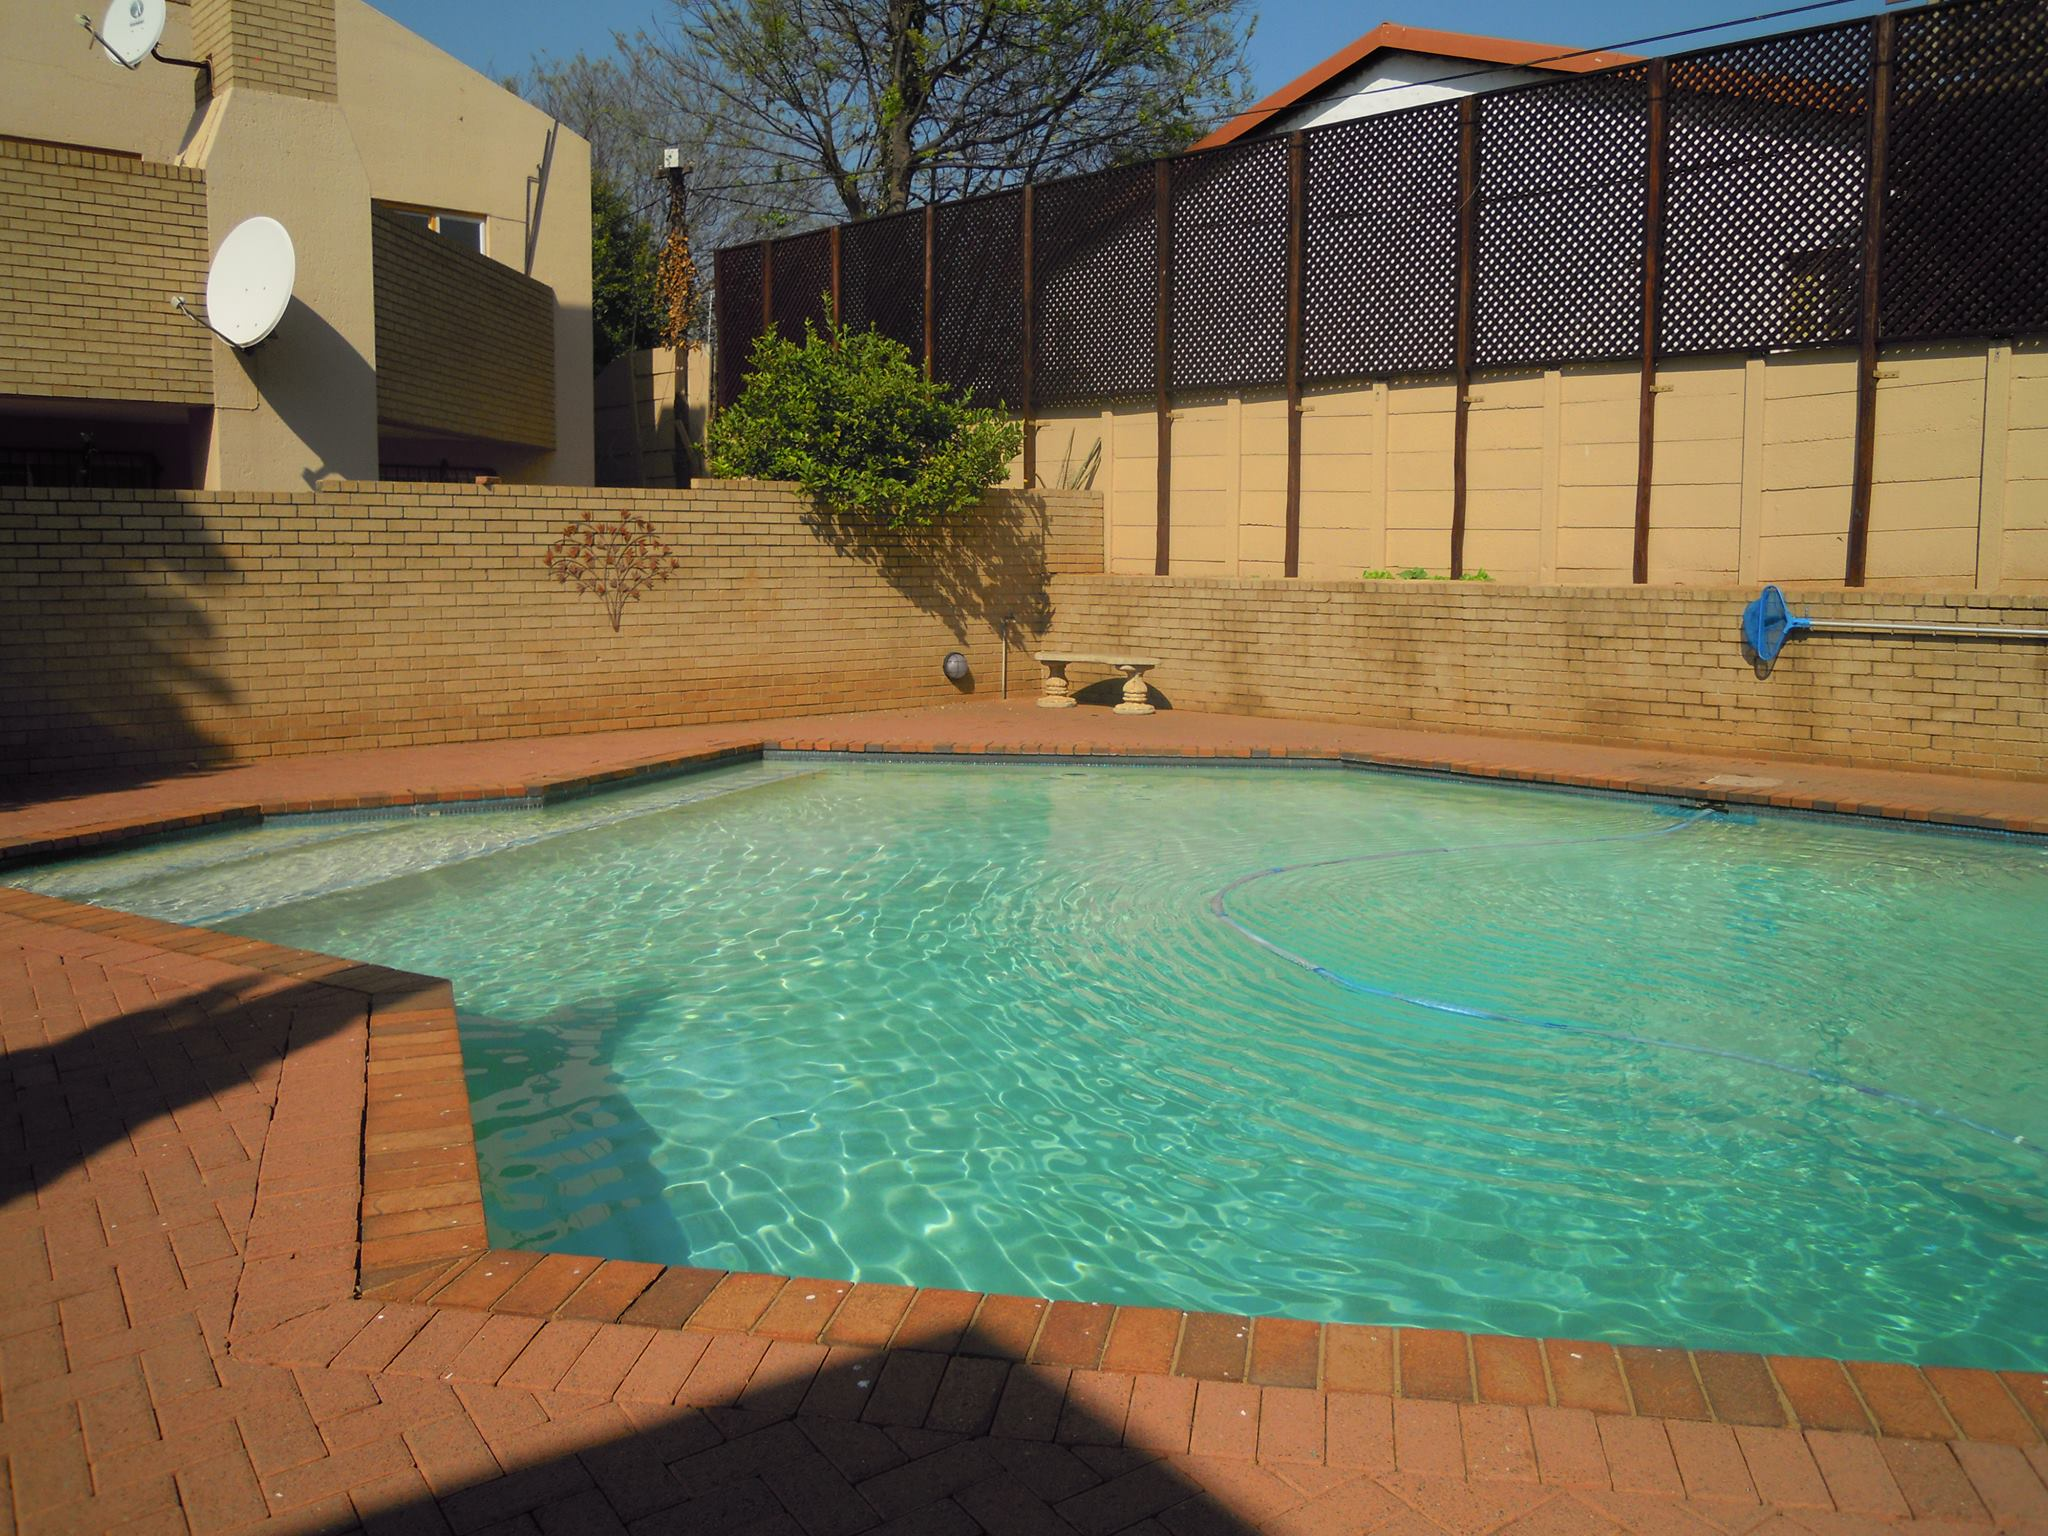 2 Bedroom Townhouse for sale in Glenanda ENT0061494 : photo#0